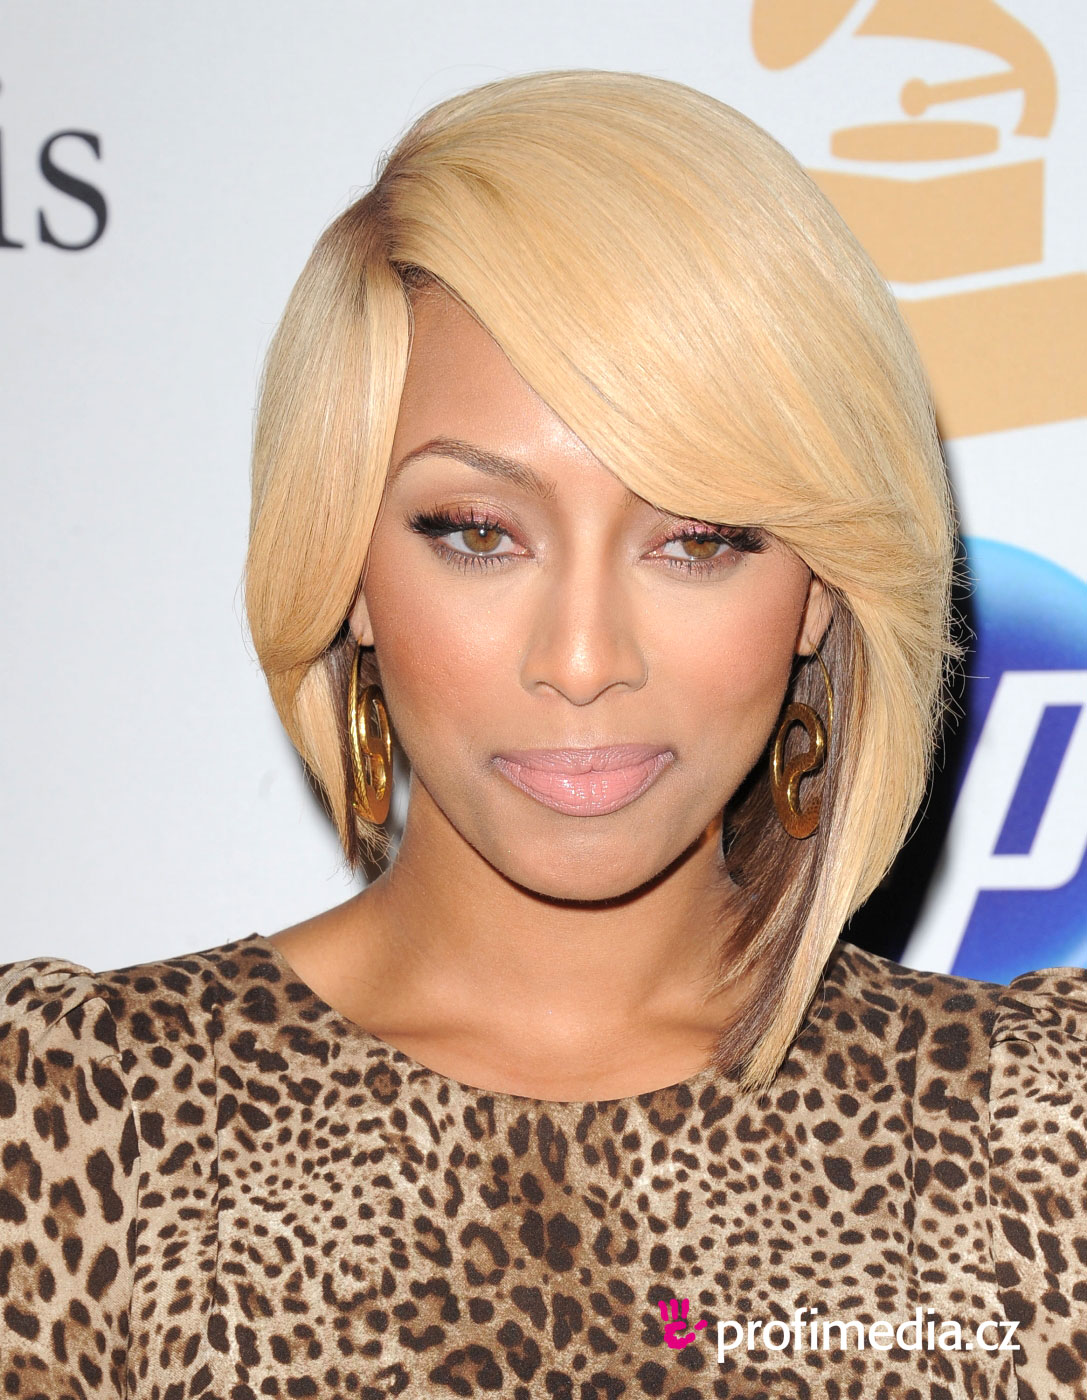 Tremendous Keri Hilson Hairstyle Easyhairstyler Short Hairstyles For Black Women Fulllsitofus